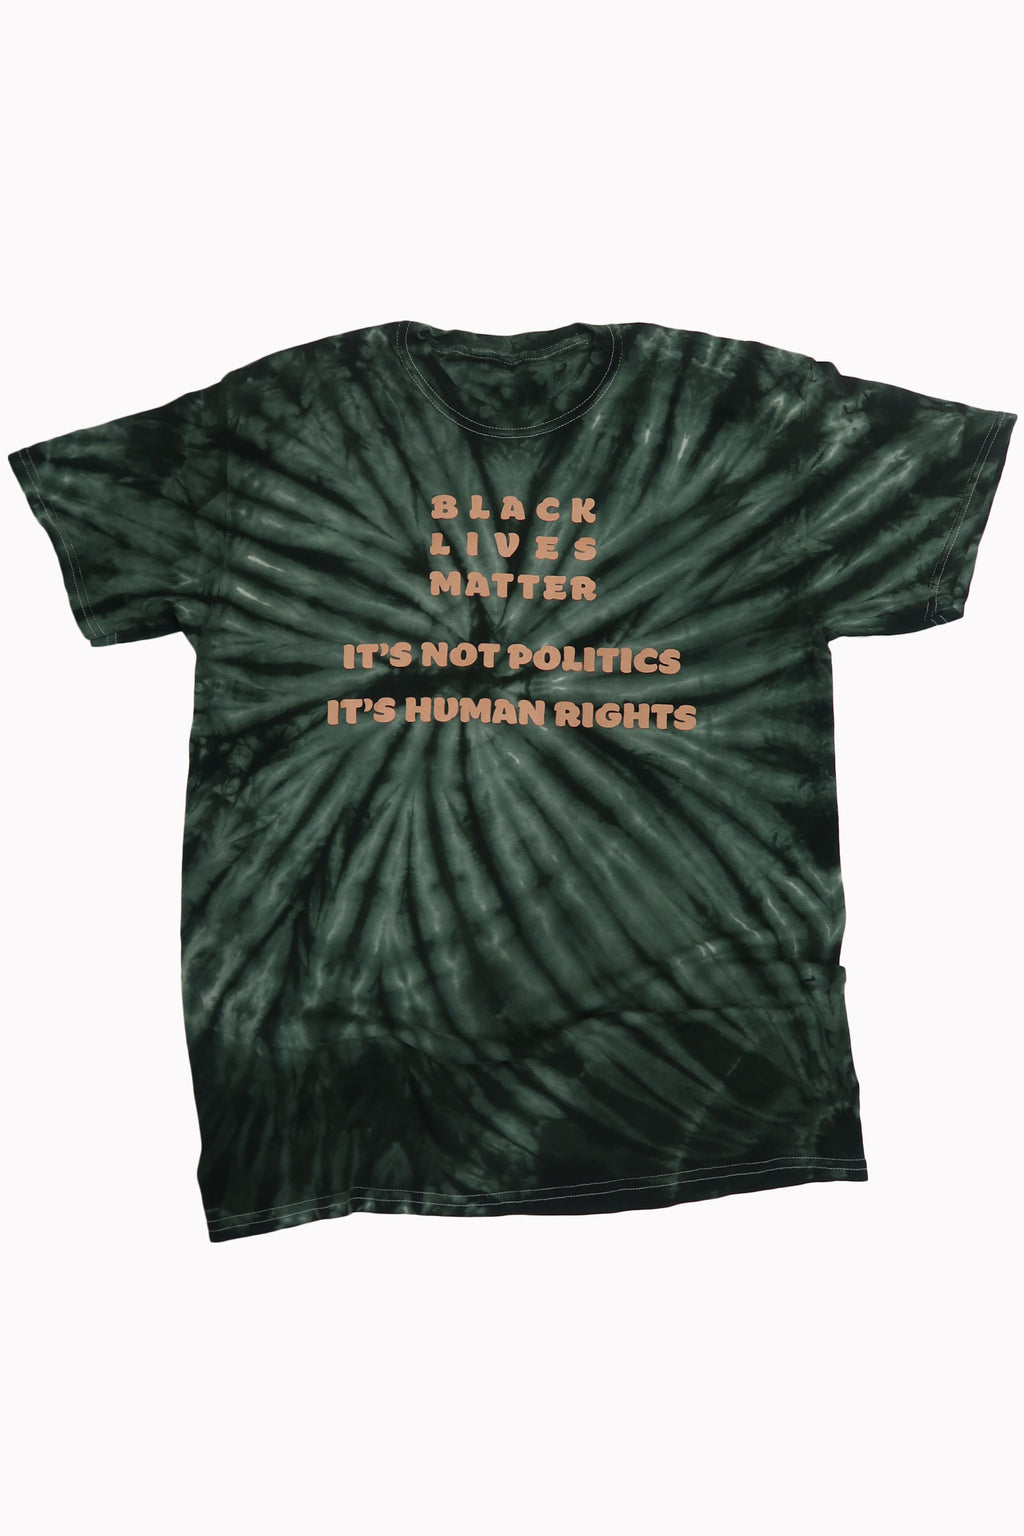 Human Rights Shirt in Forest Green - Trunk Series